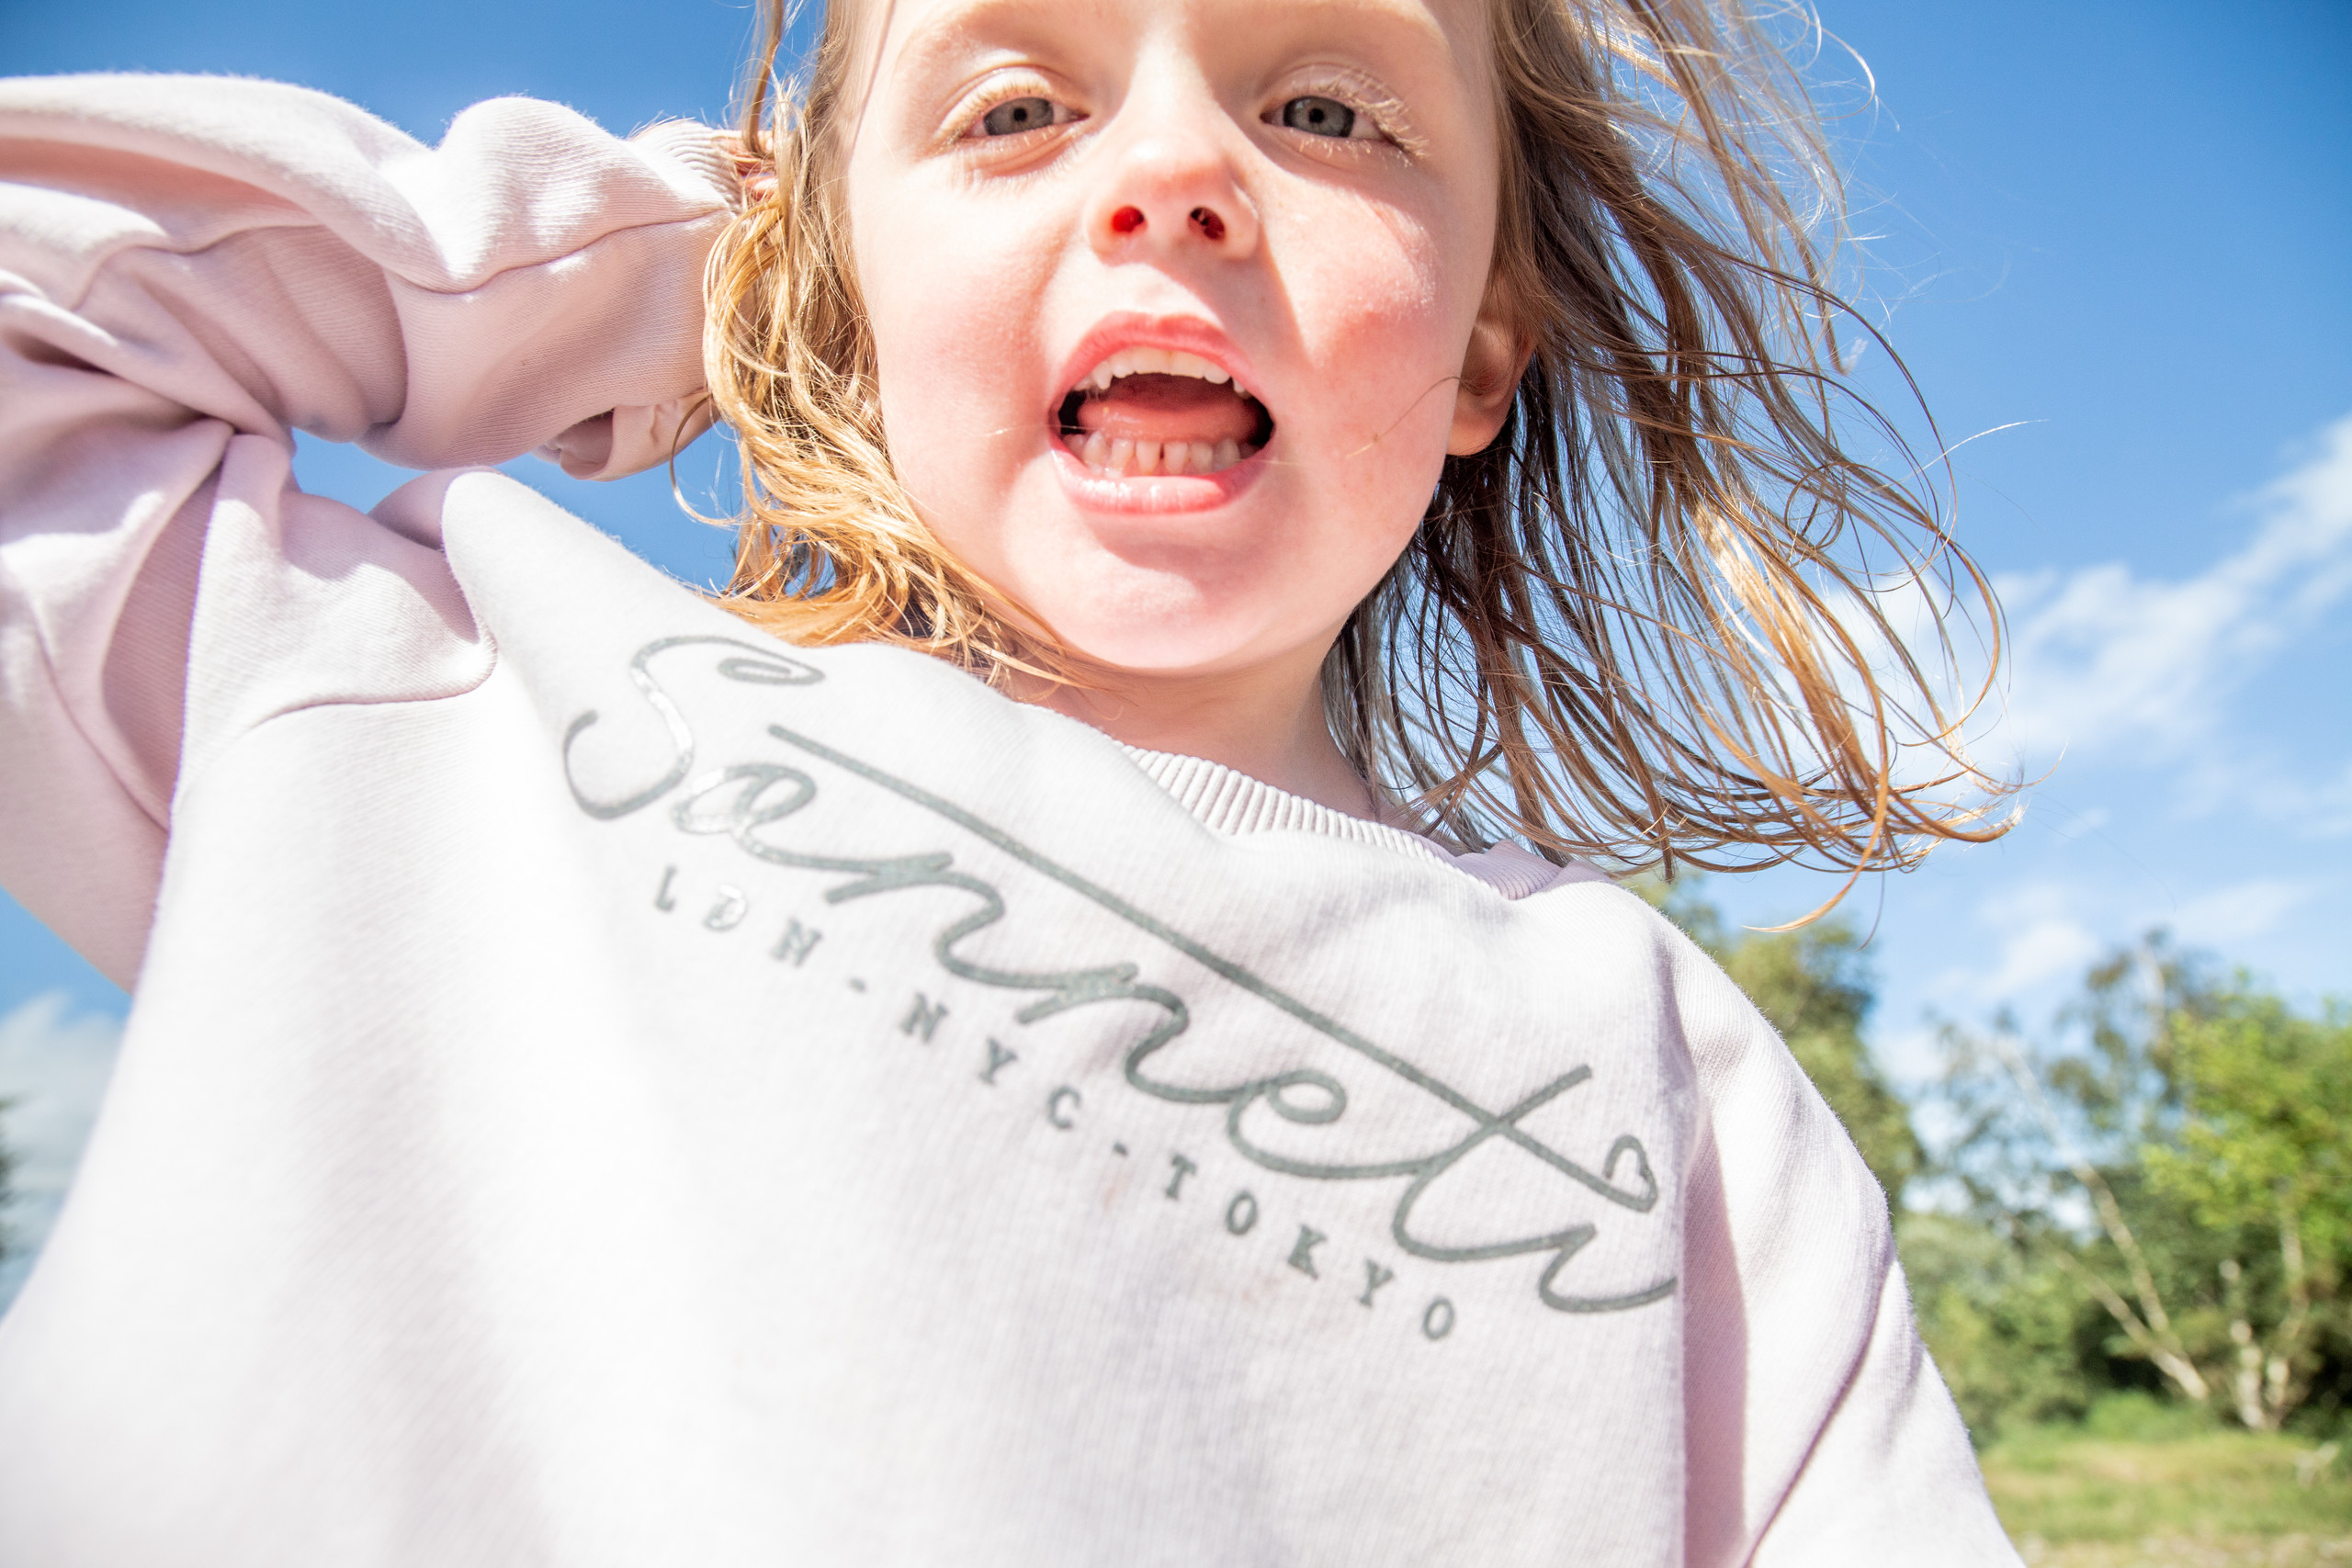 Girl shouts at the photographer in a swansea outdoor location